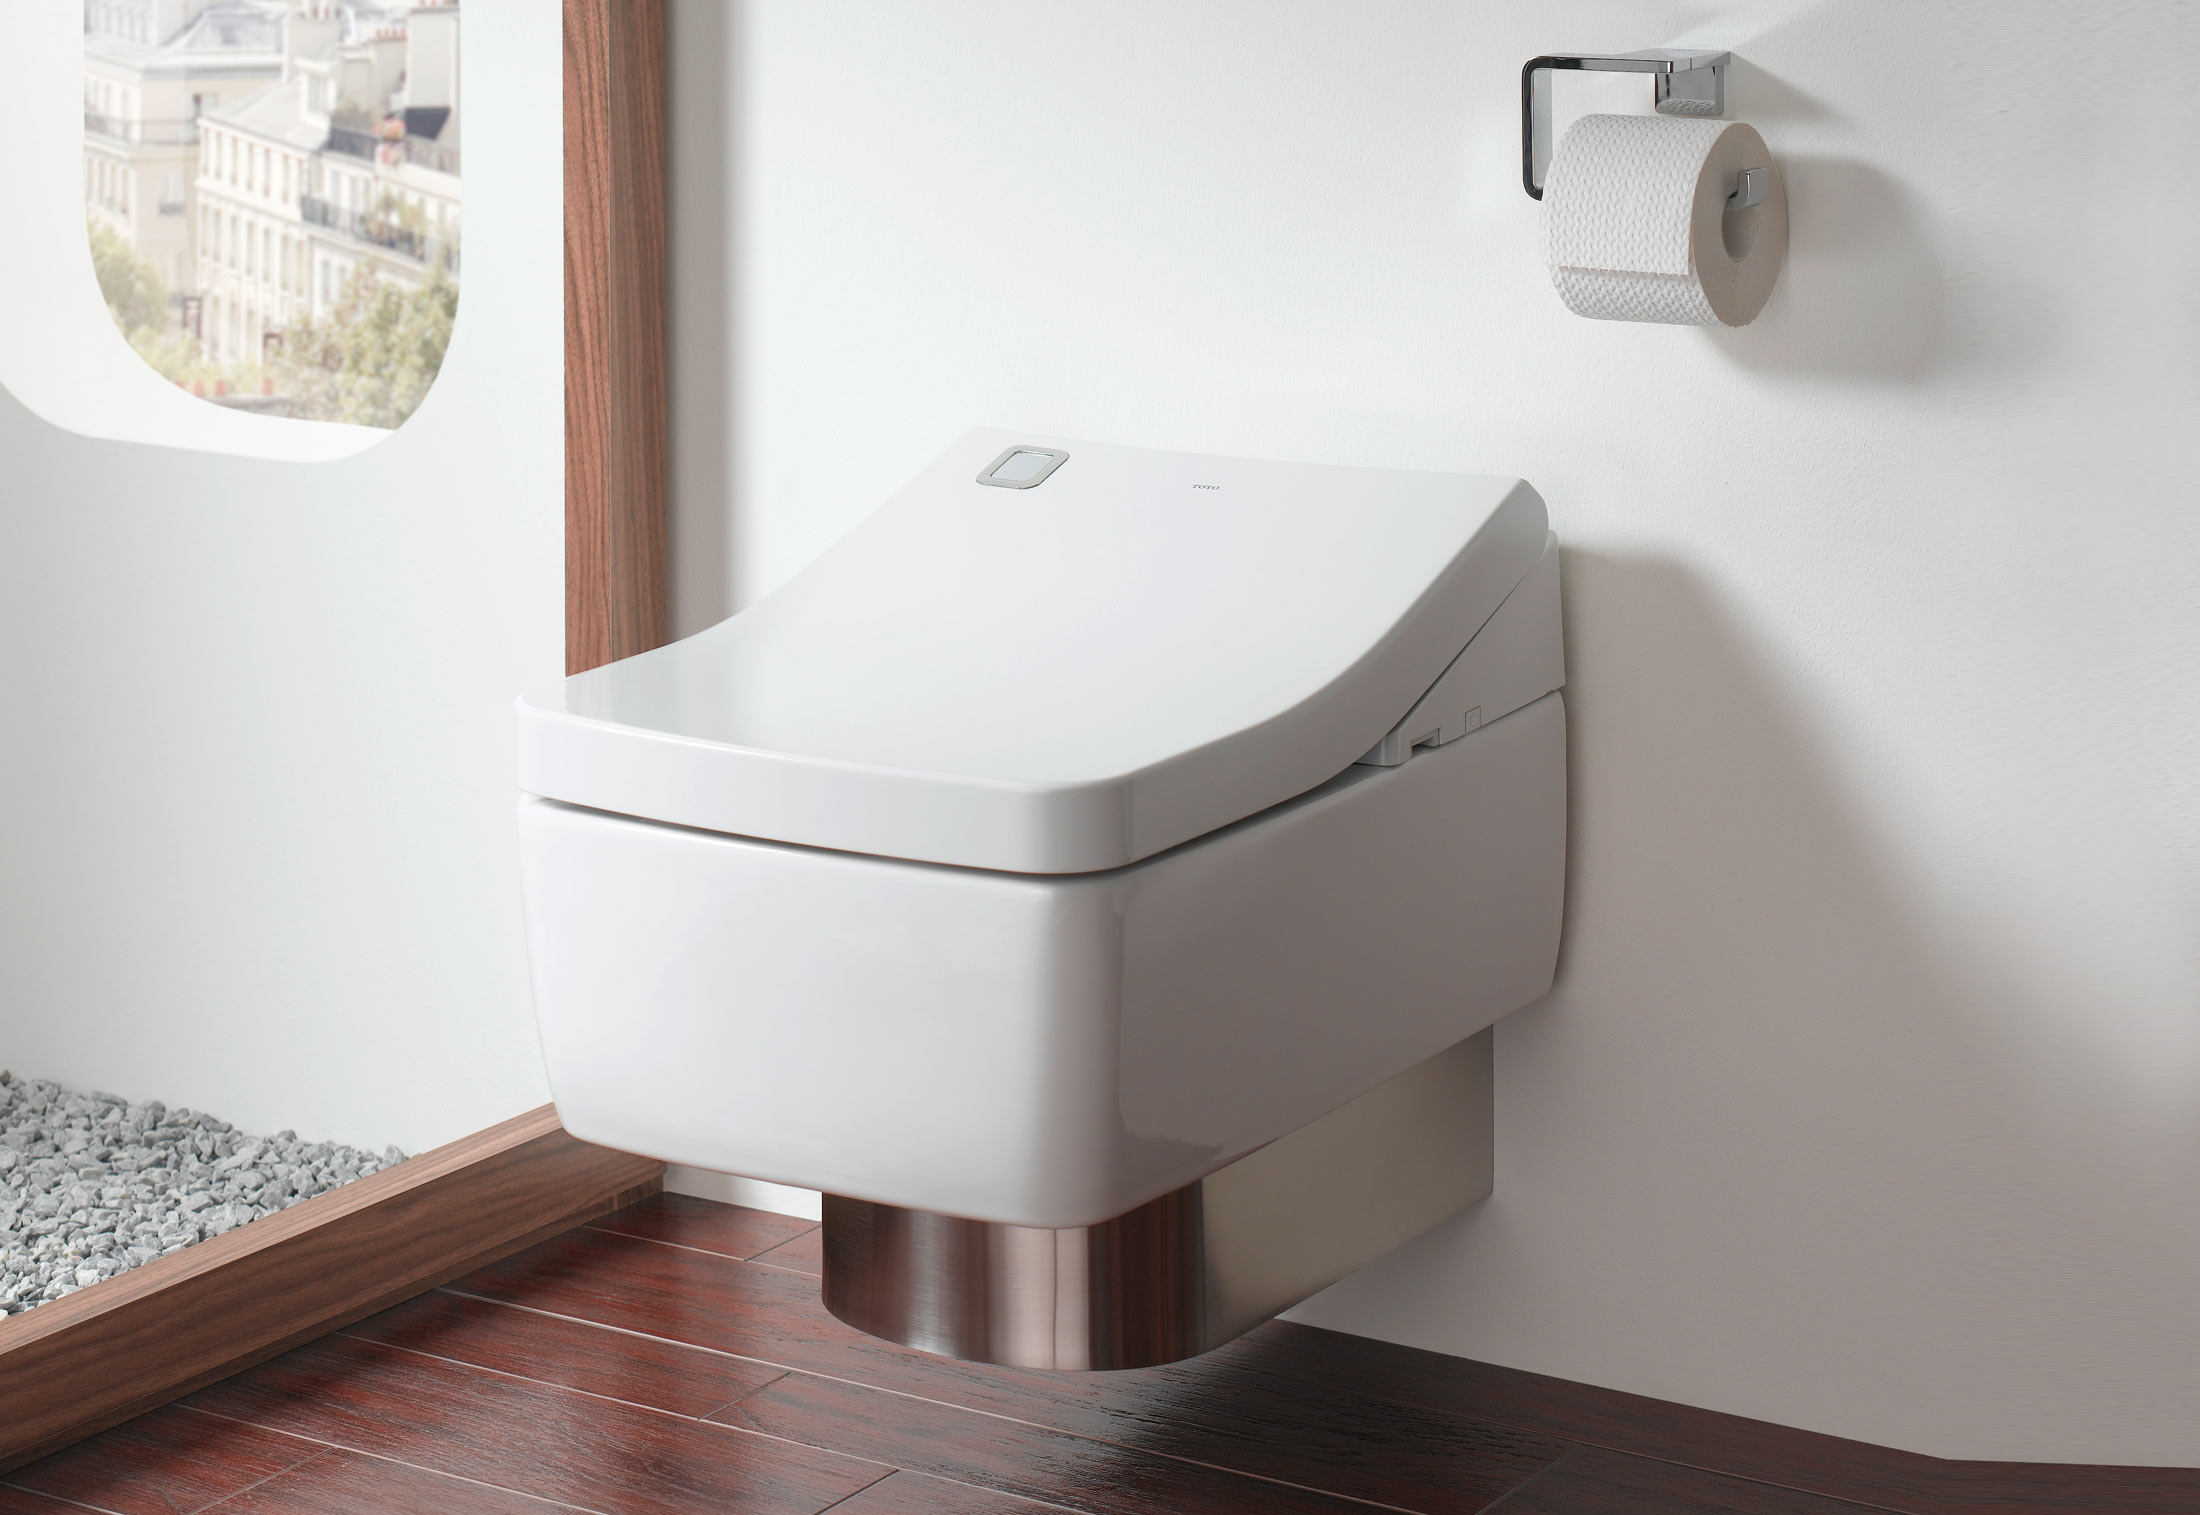 SG Series WC Toto Washlet On White Wall Which Matched With Wooden Floor For Bathroom Decor Ideas